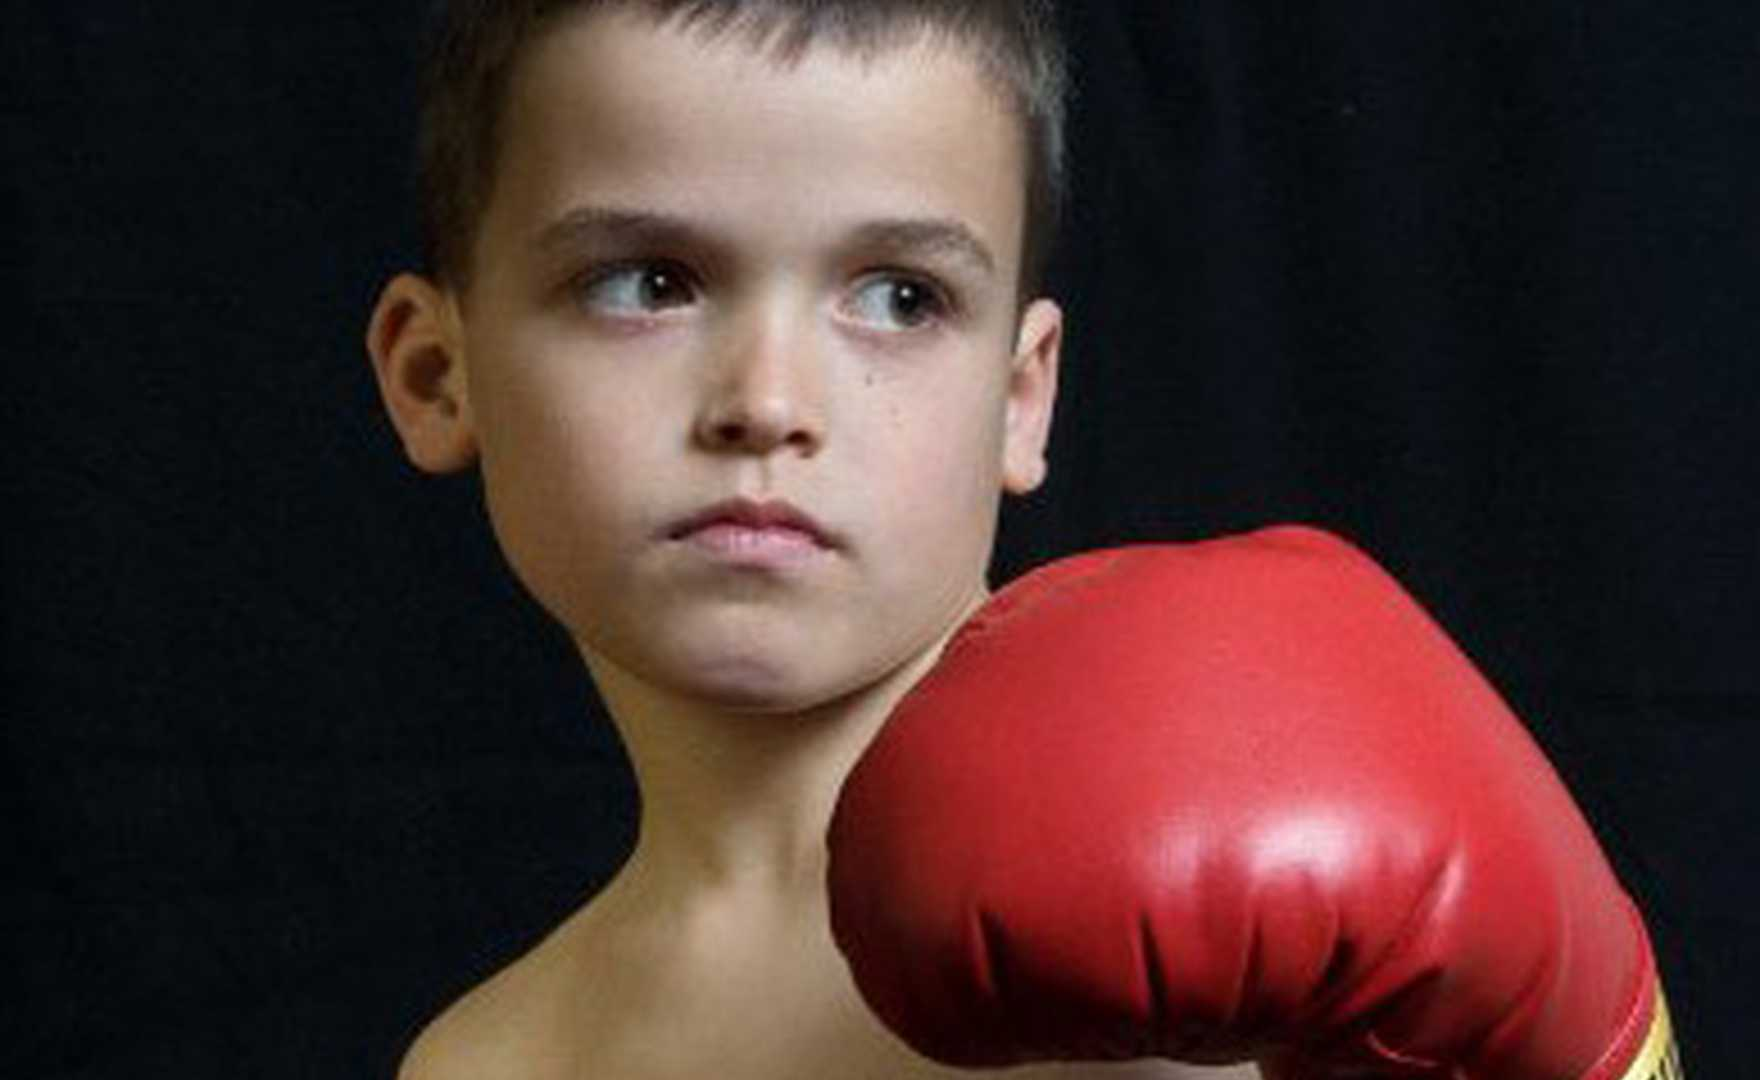 Boxing Gloves for Children?